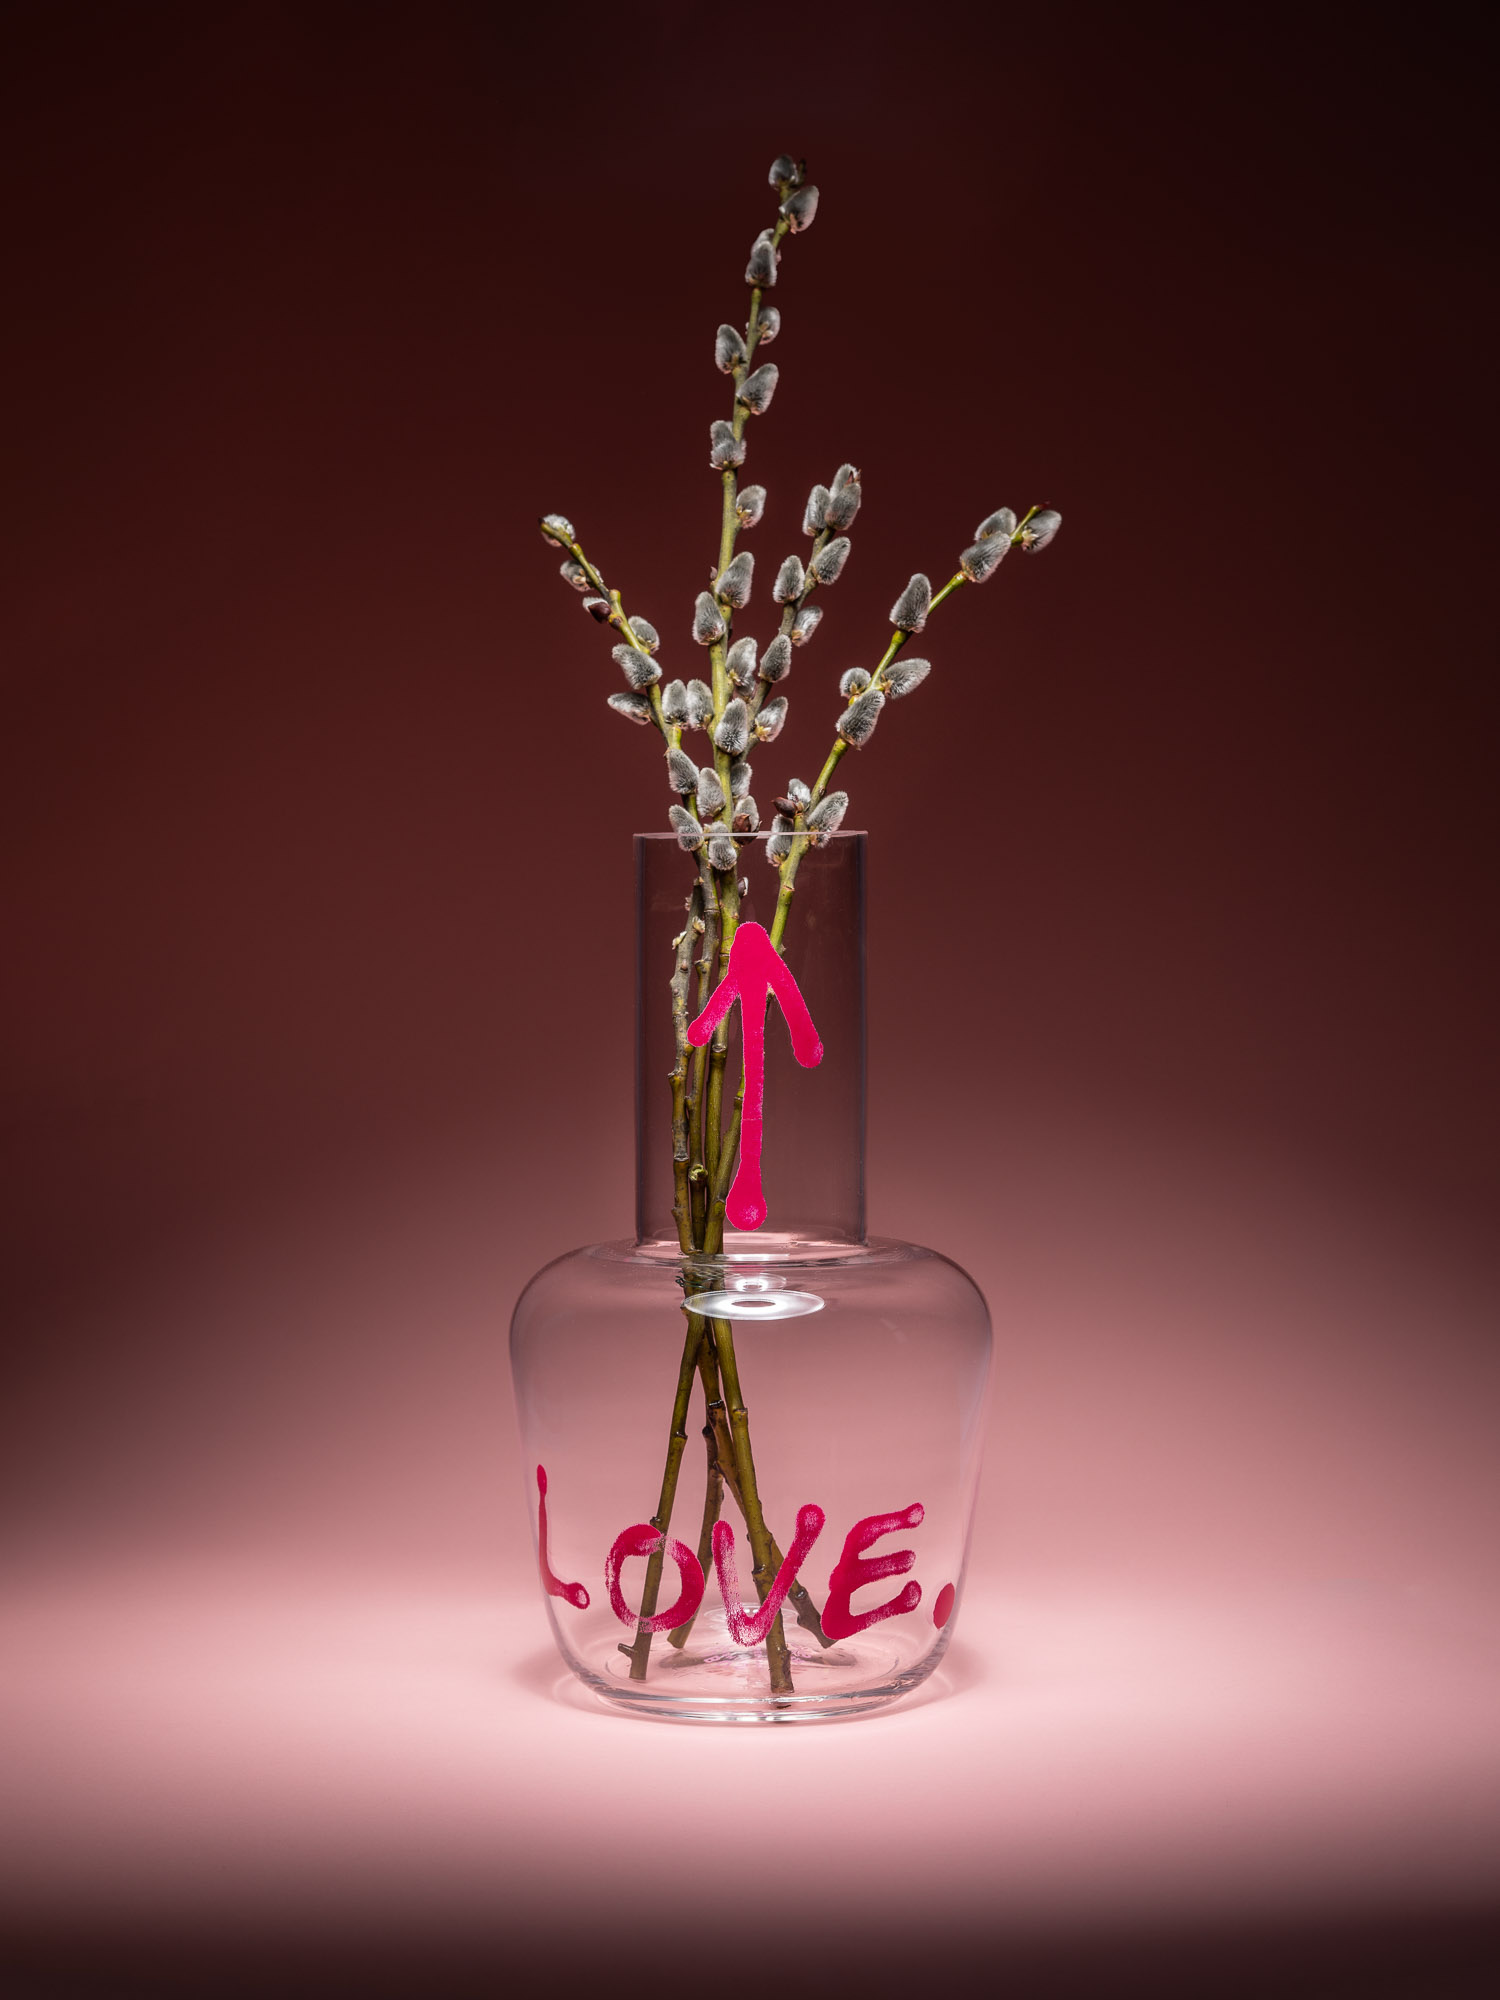 Transparent Love vase by Qubus with pink graffiti and flowers